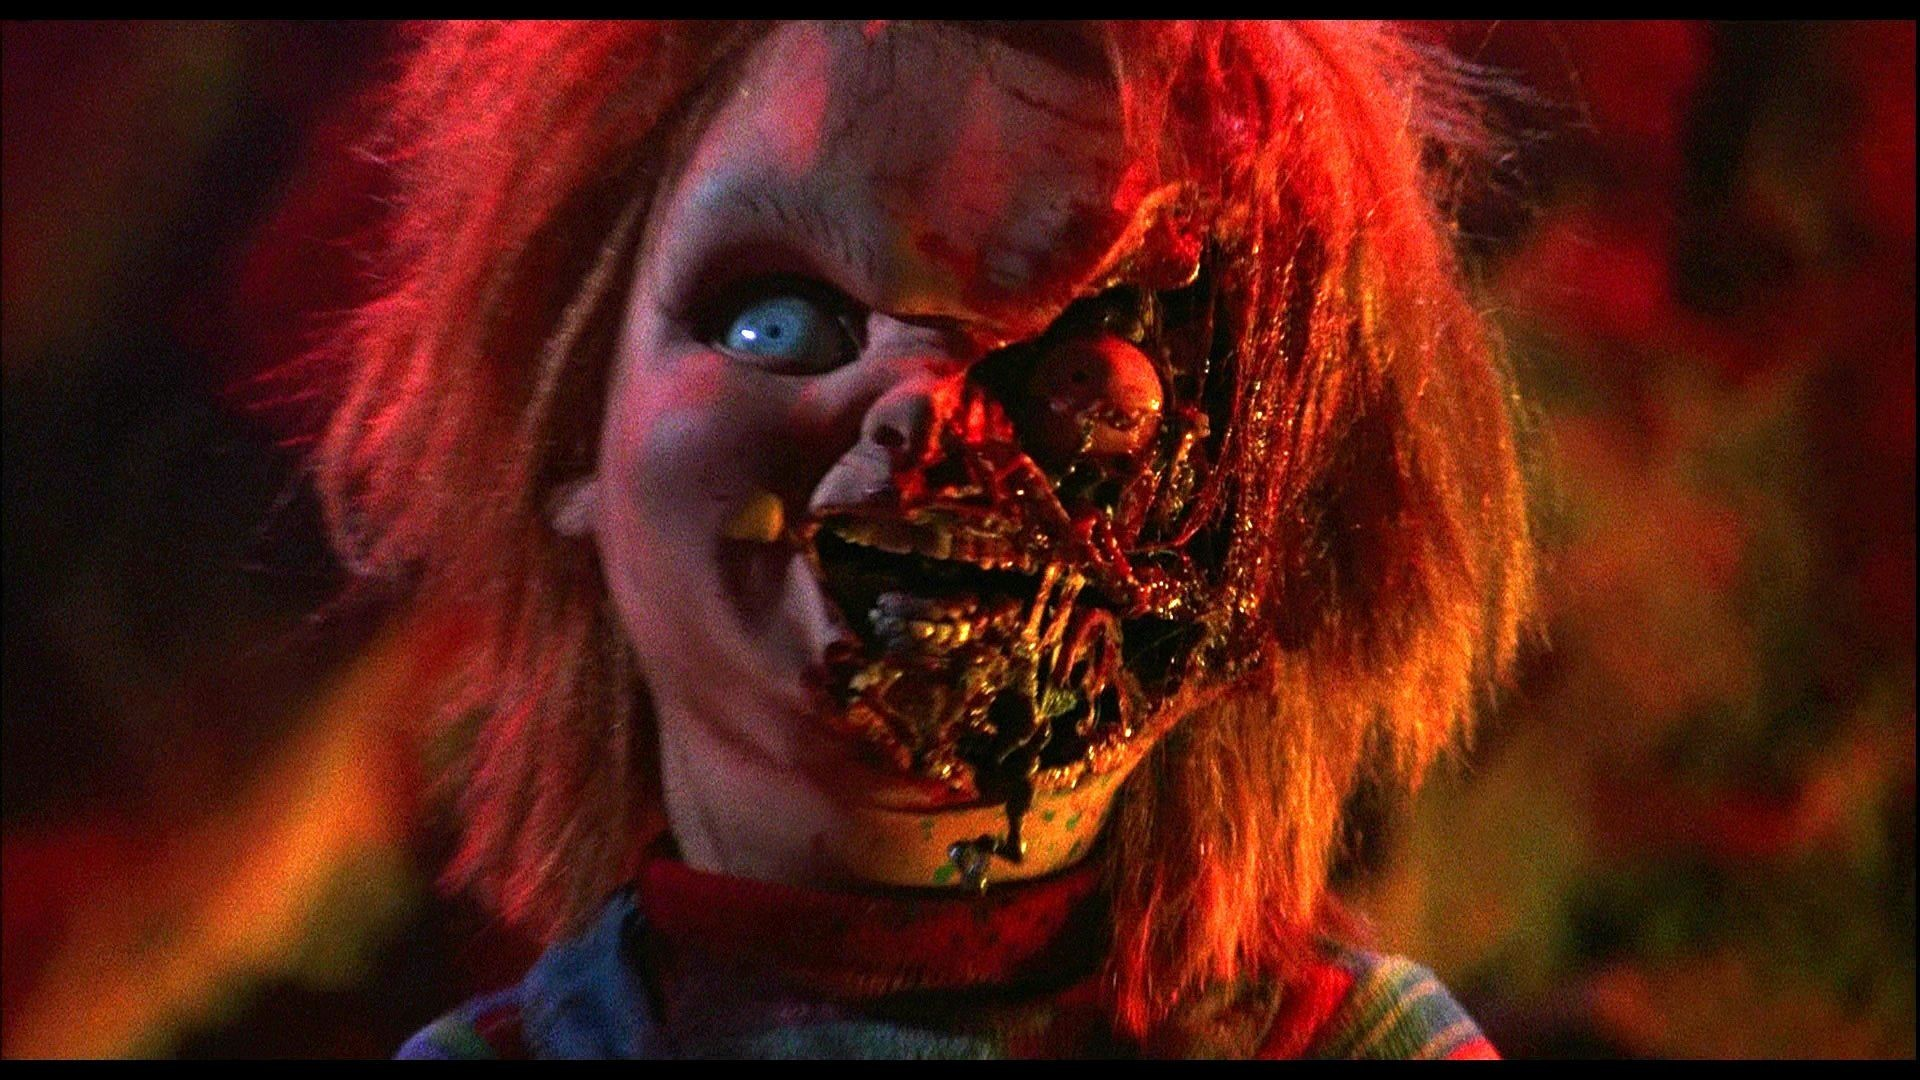 Res: 1920x1080, creepy pictures | CHILDS PLAY chucky dark horror creepy scary (28) wallpaper  |